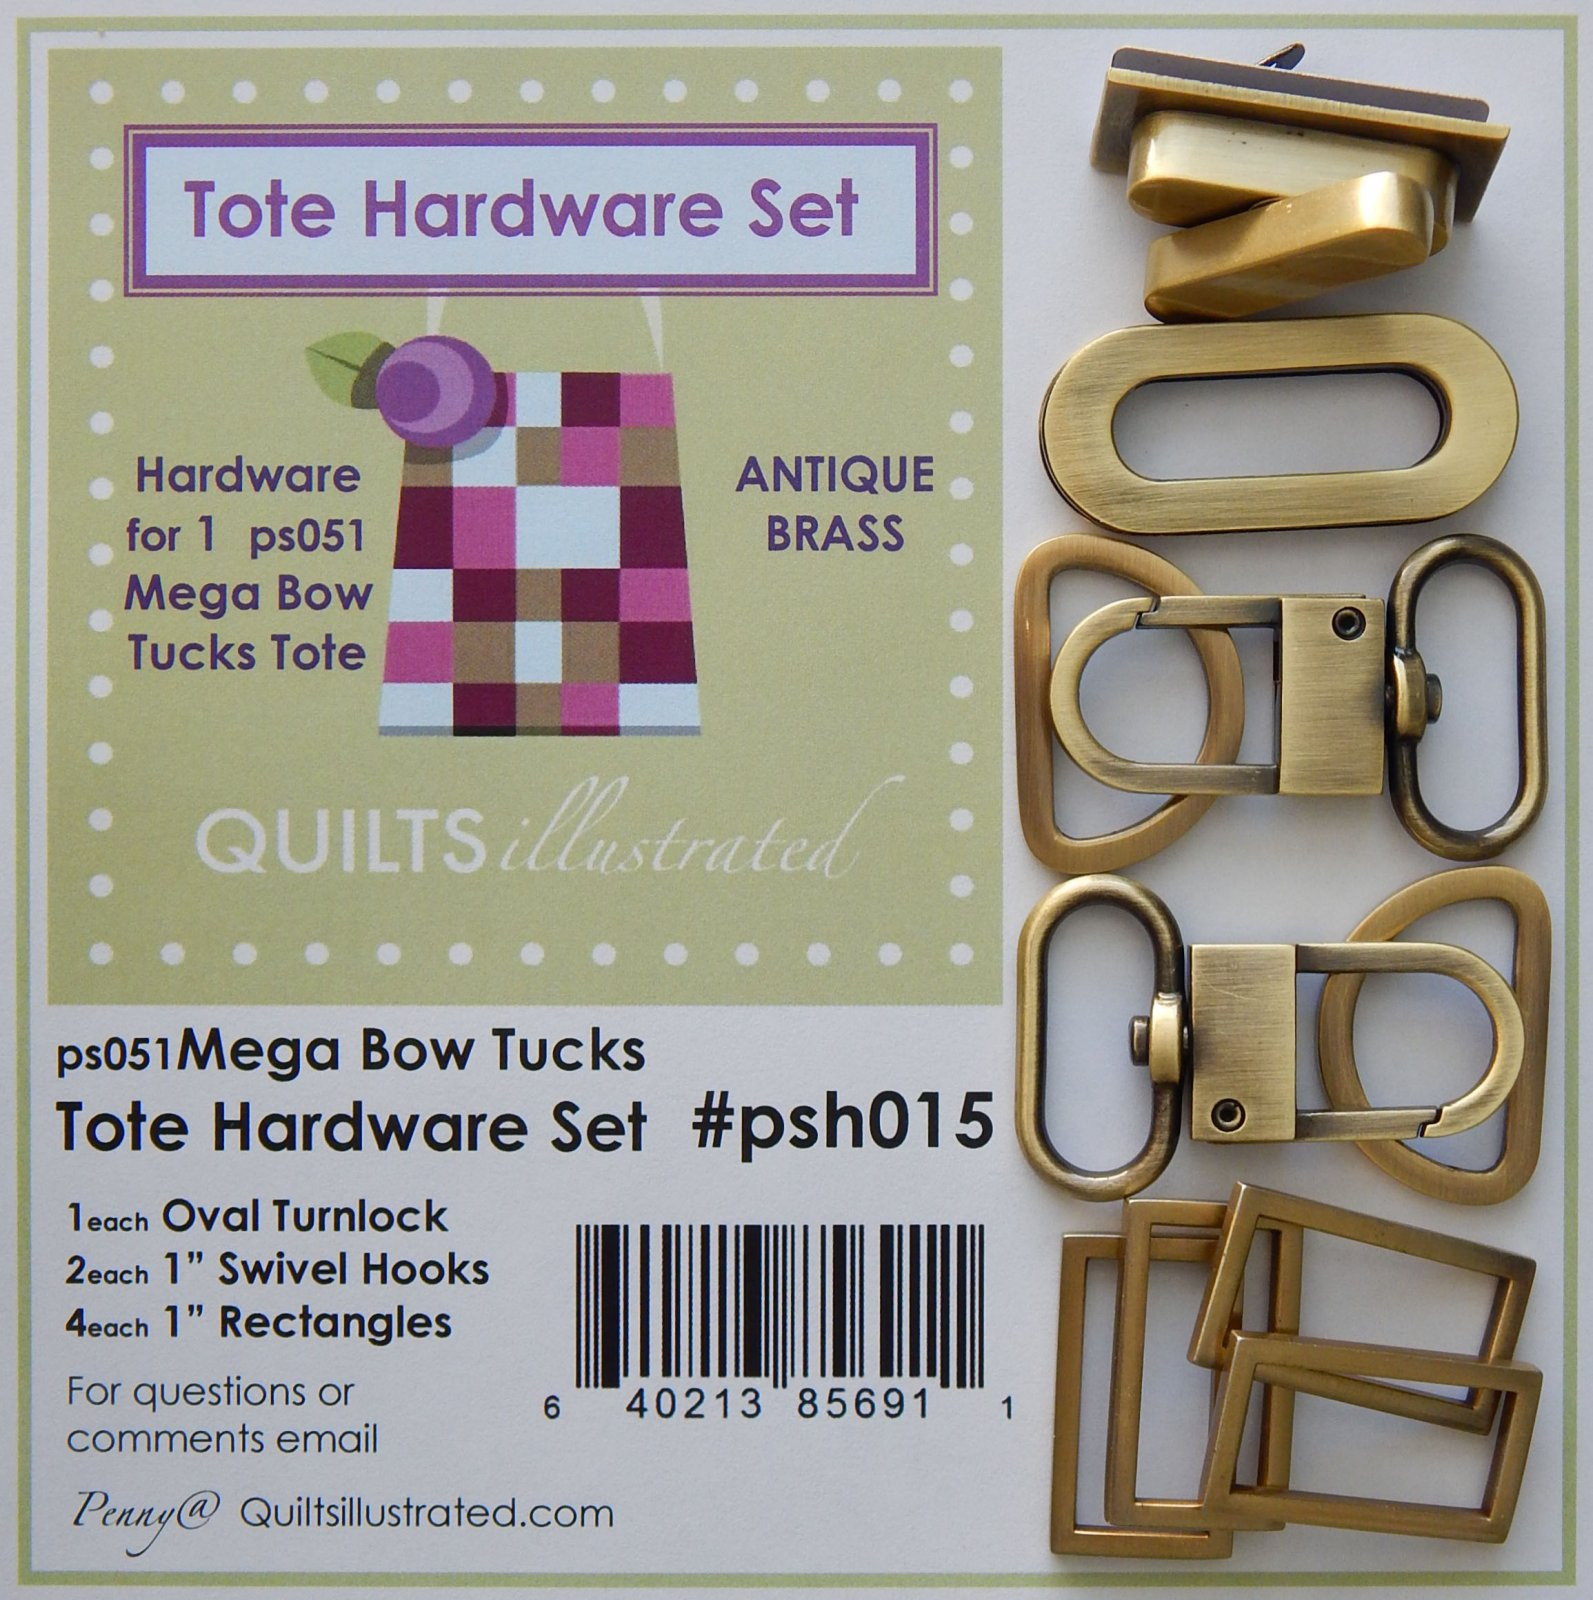 Tote Hardware Set- Antique Brass (psh015)